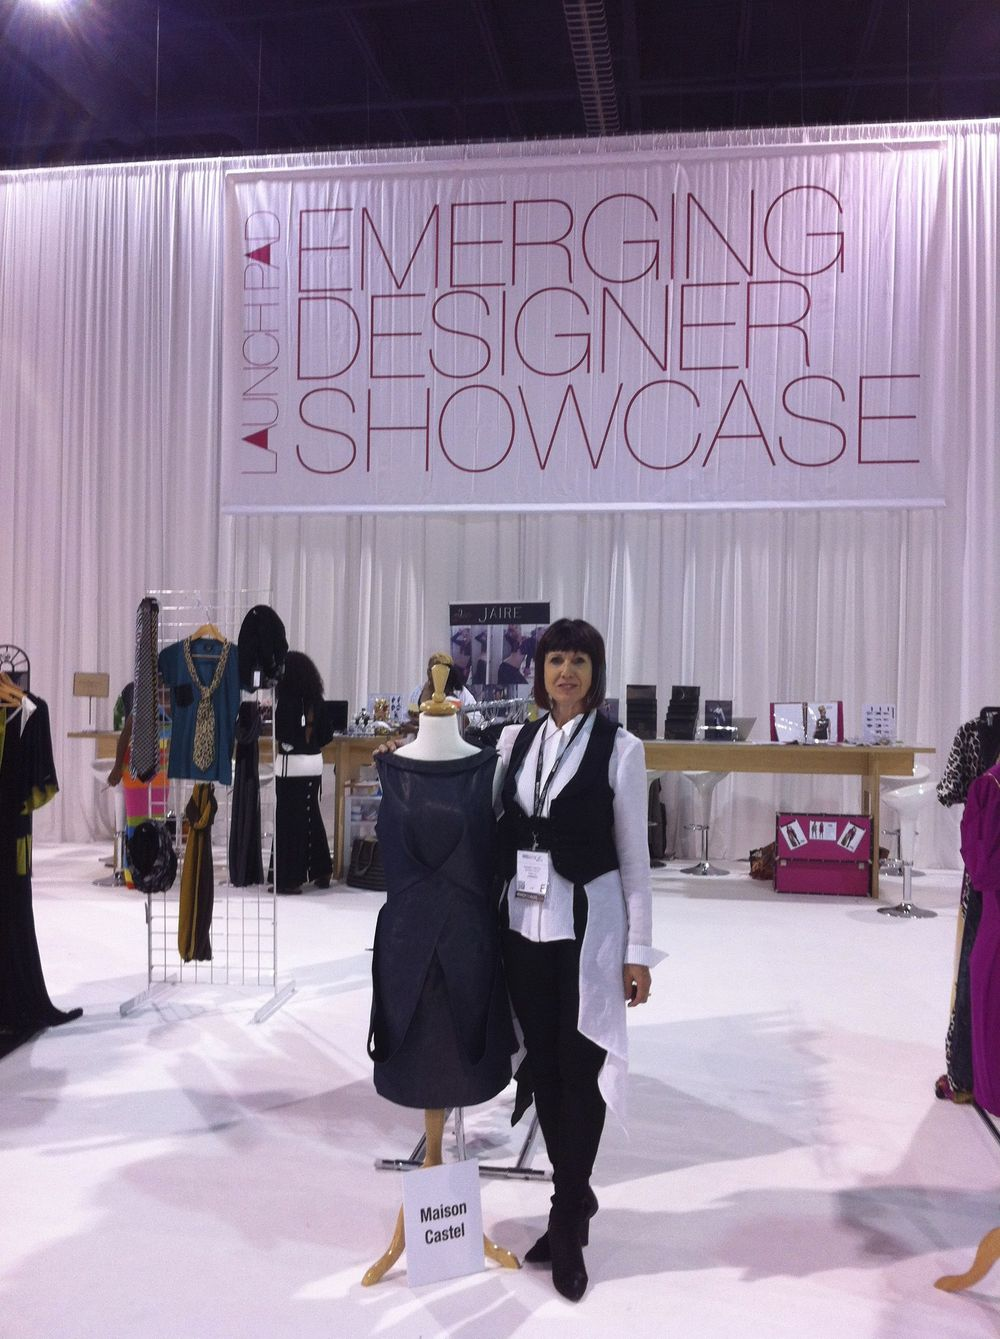 Dawn shows her latest designs at WWDMagic